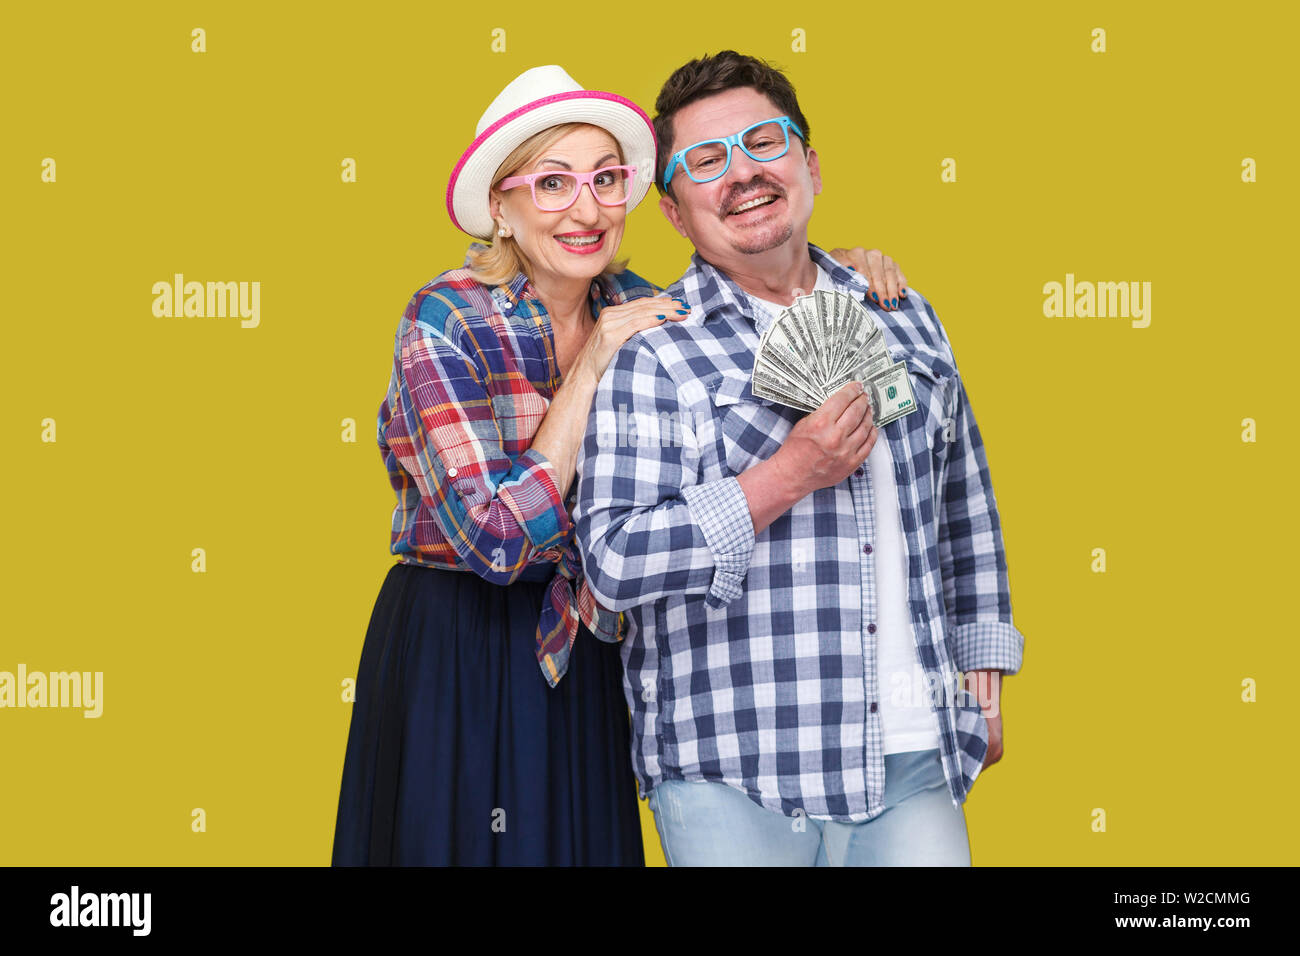 Happy wealthy family, adult man and woman in casual checkered shirt standing pickaback together, holding fan of dollar, toothy smile, looking at camer Stock Photo